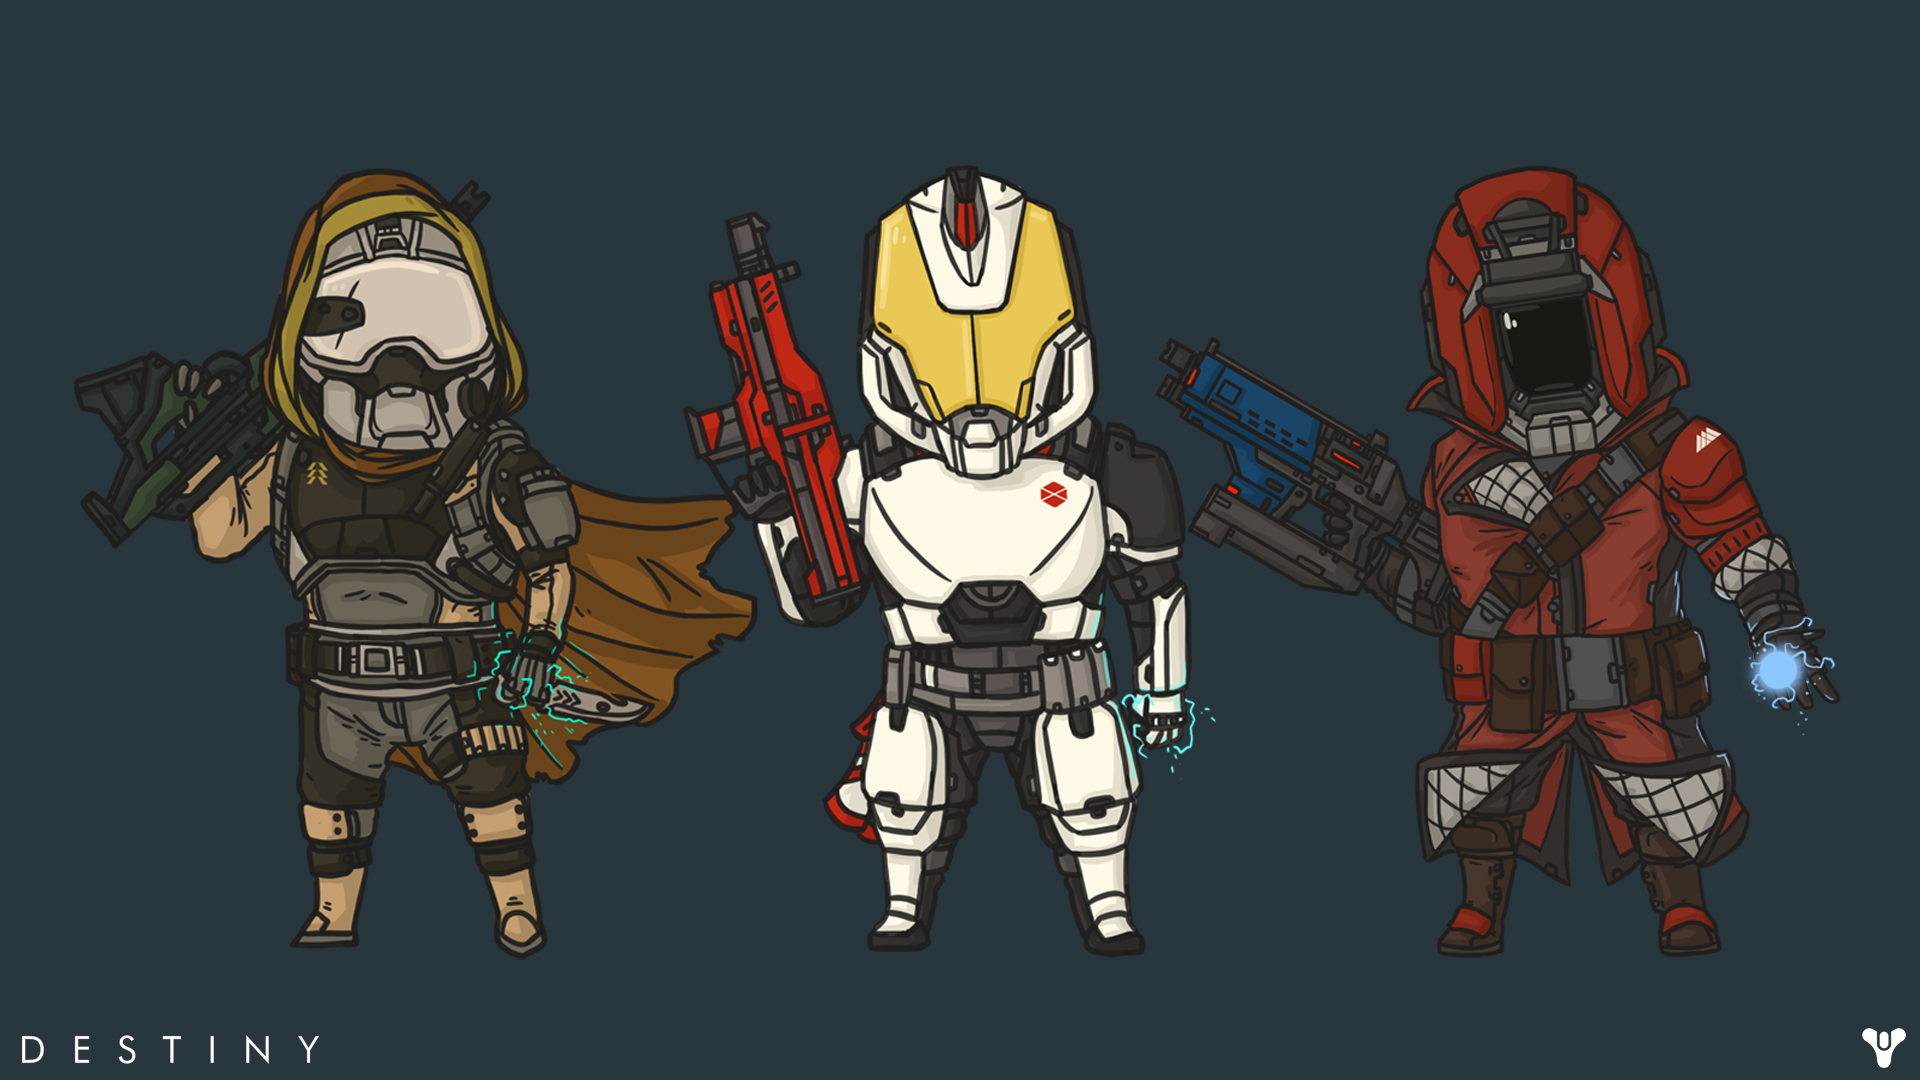 Cute Destiny Wallpaper by TheChrisPMan